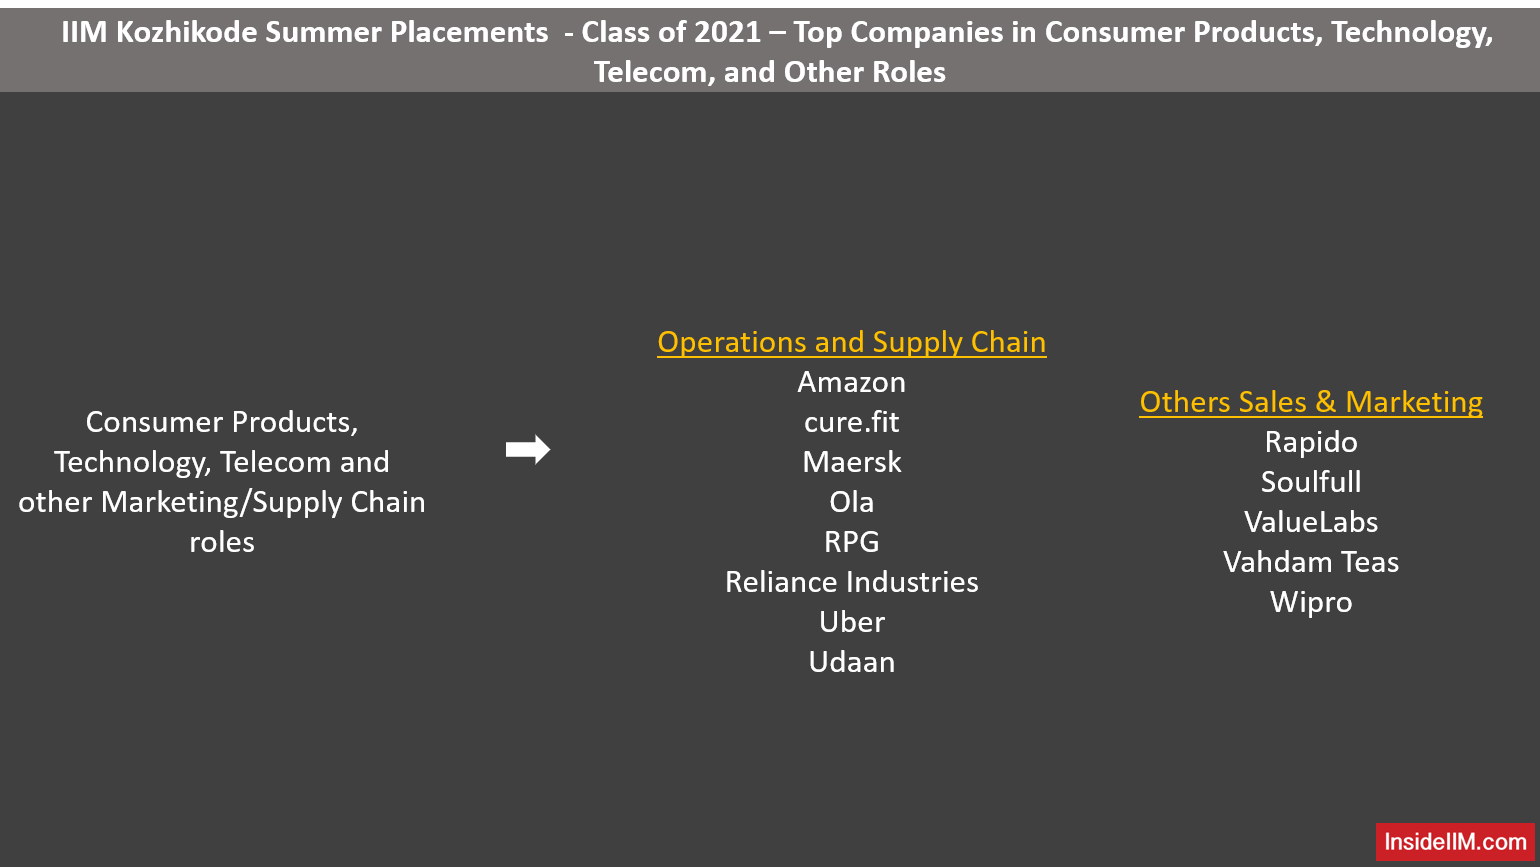 IIM Kozhikode Summer Placements PGP Class of 2021 - Consumer Products, Technology, Telecom